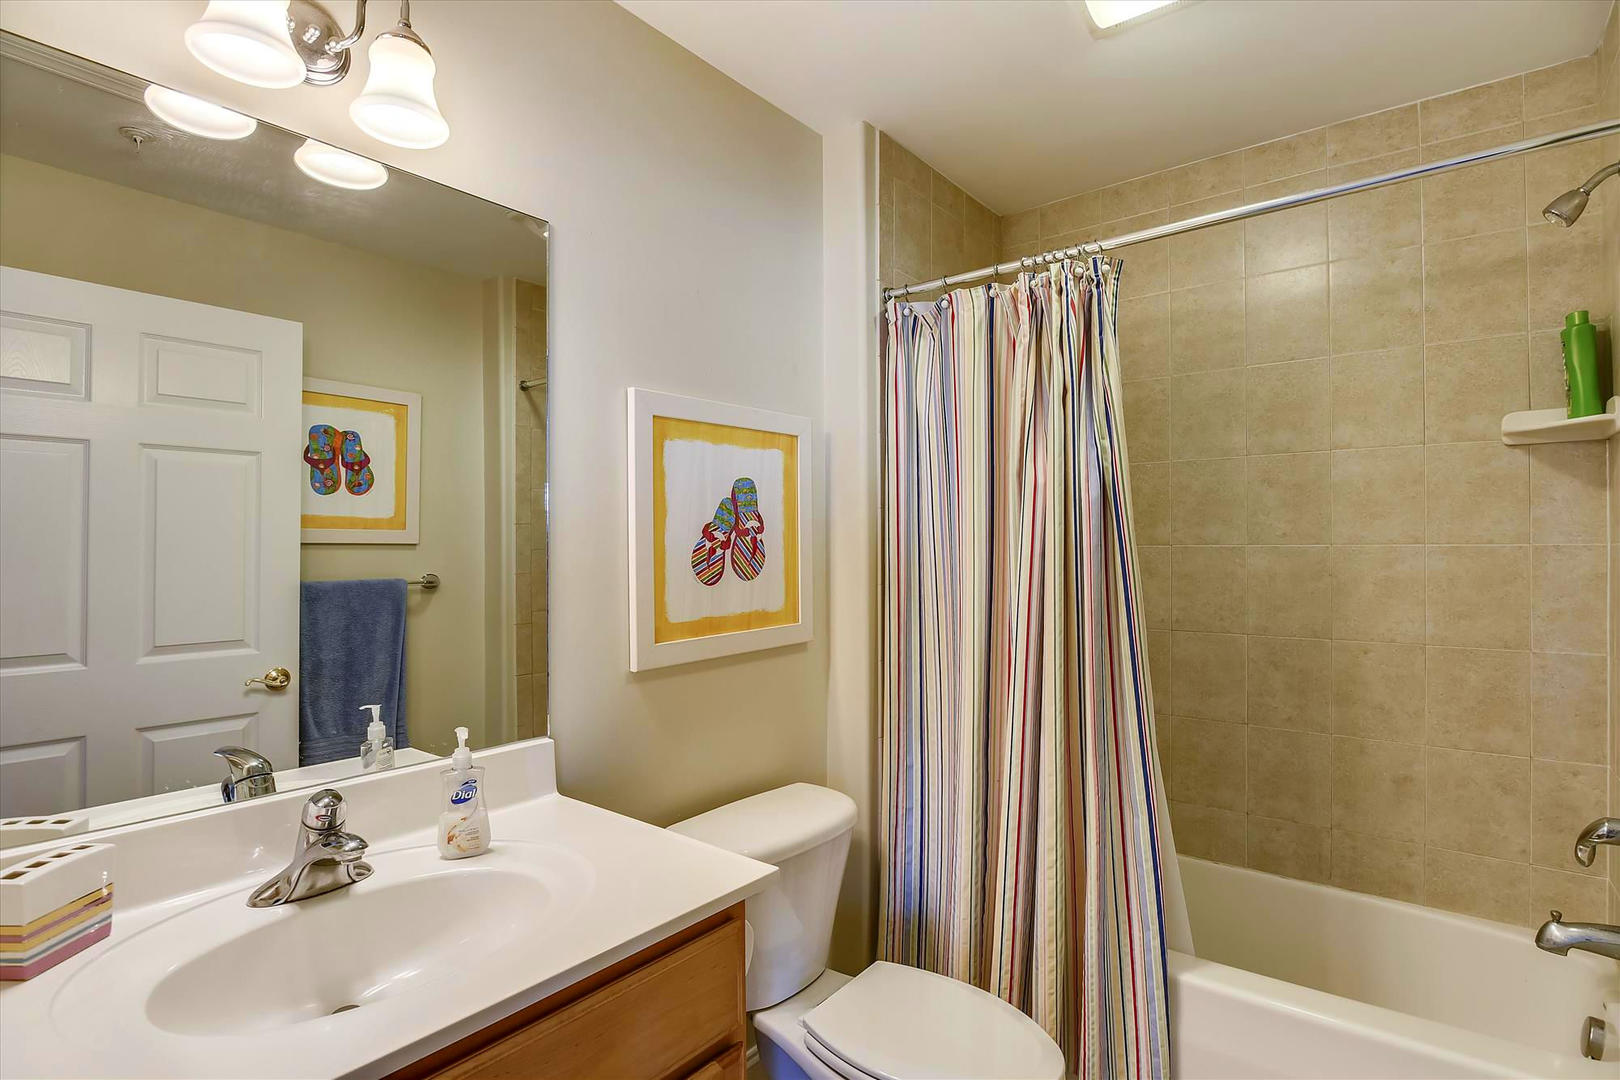 4100 Oceanside Condos 405 - Bathroom 2